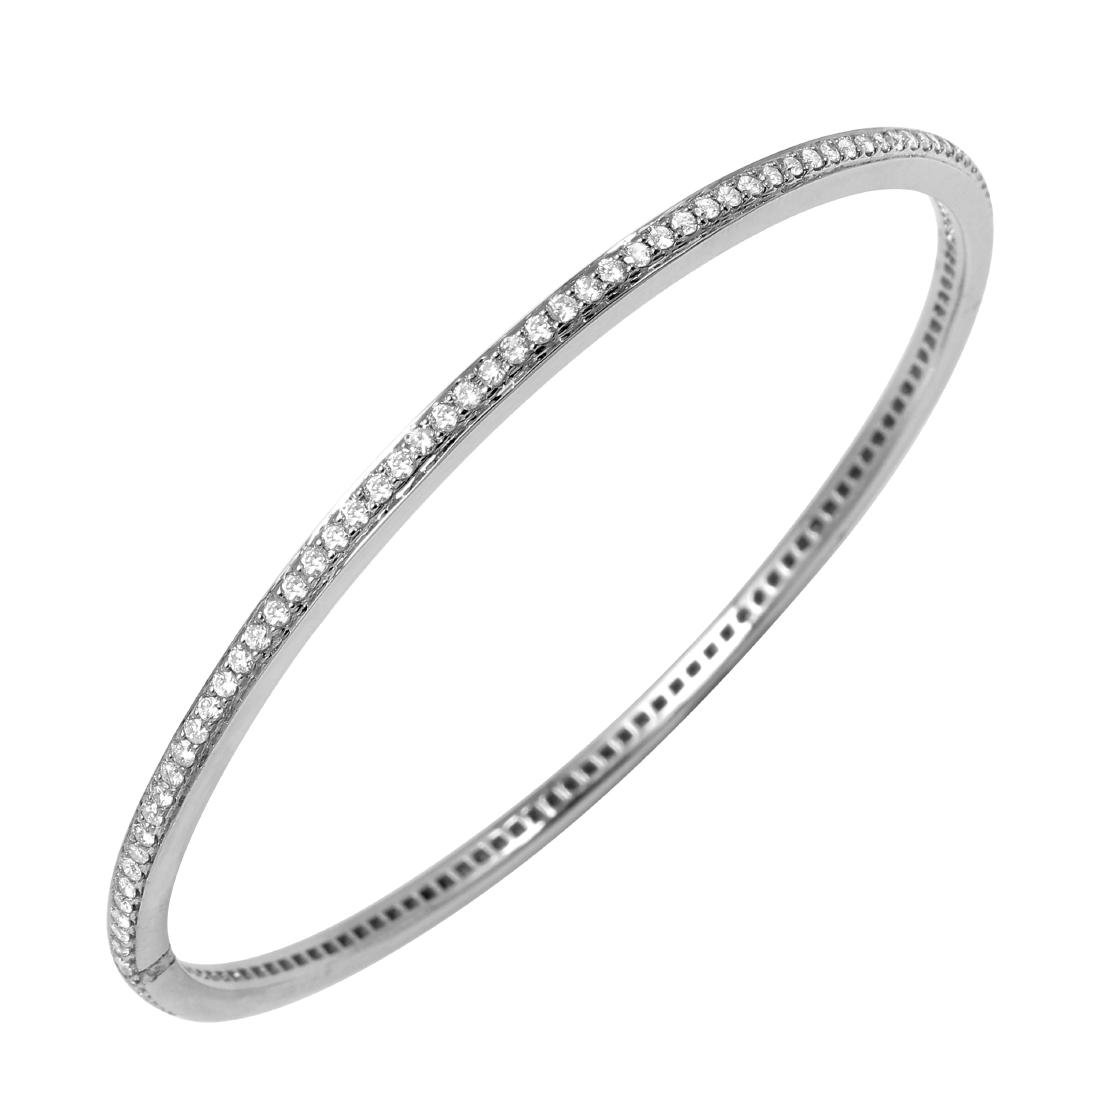 14KT White Gold Diamond Bangle Bracelet - 2